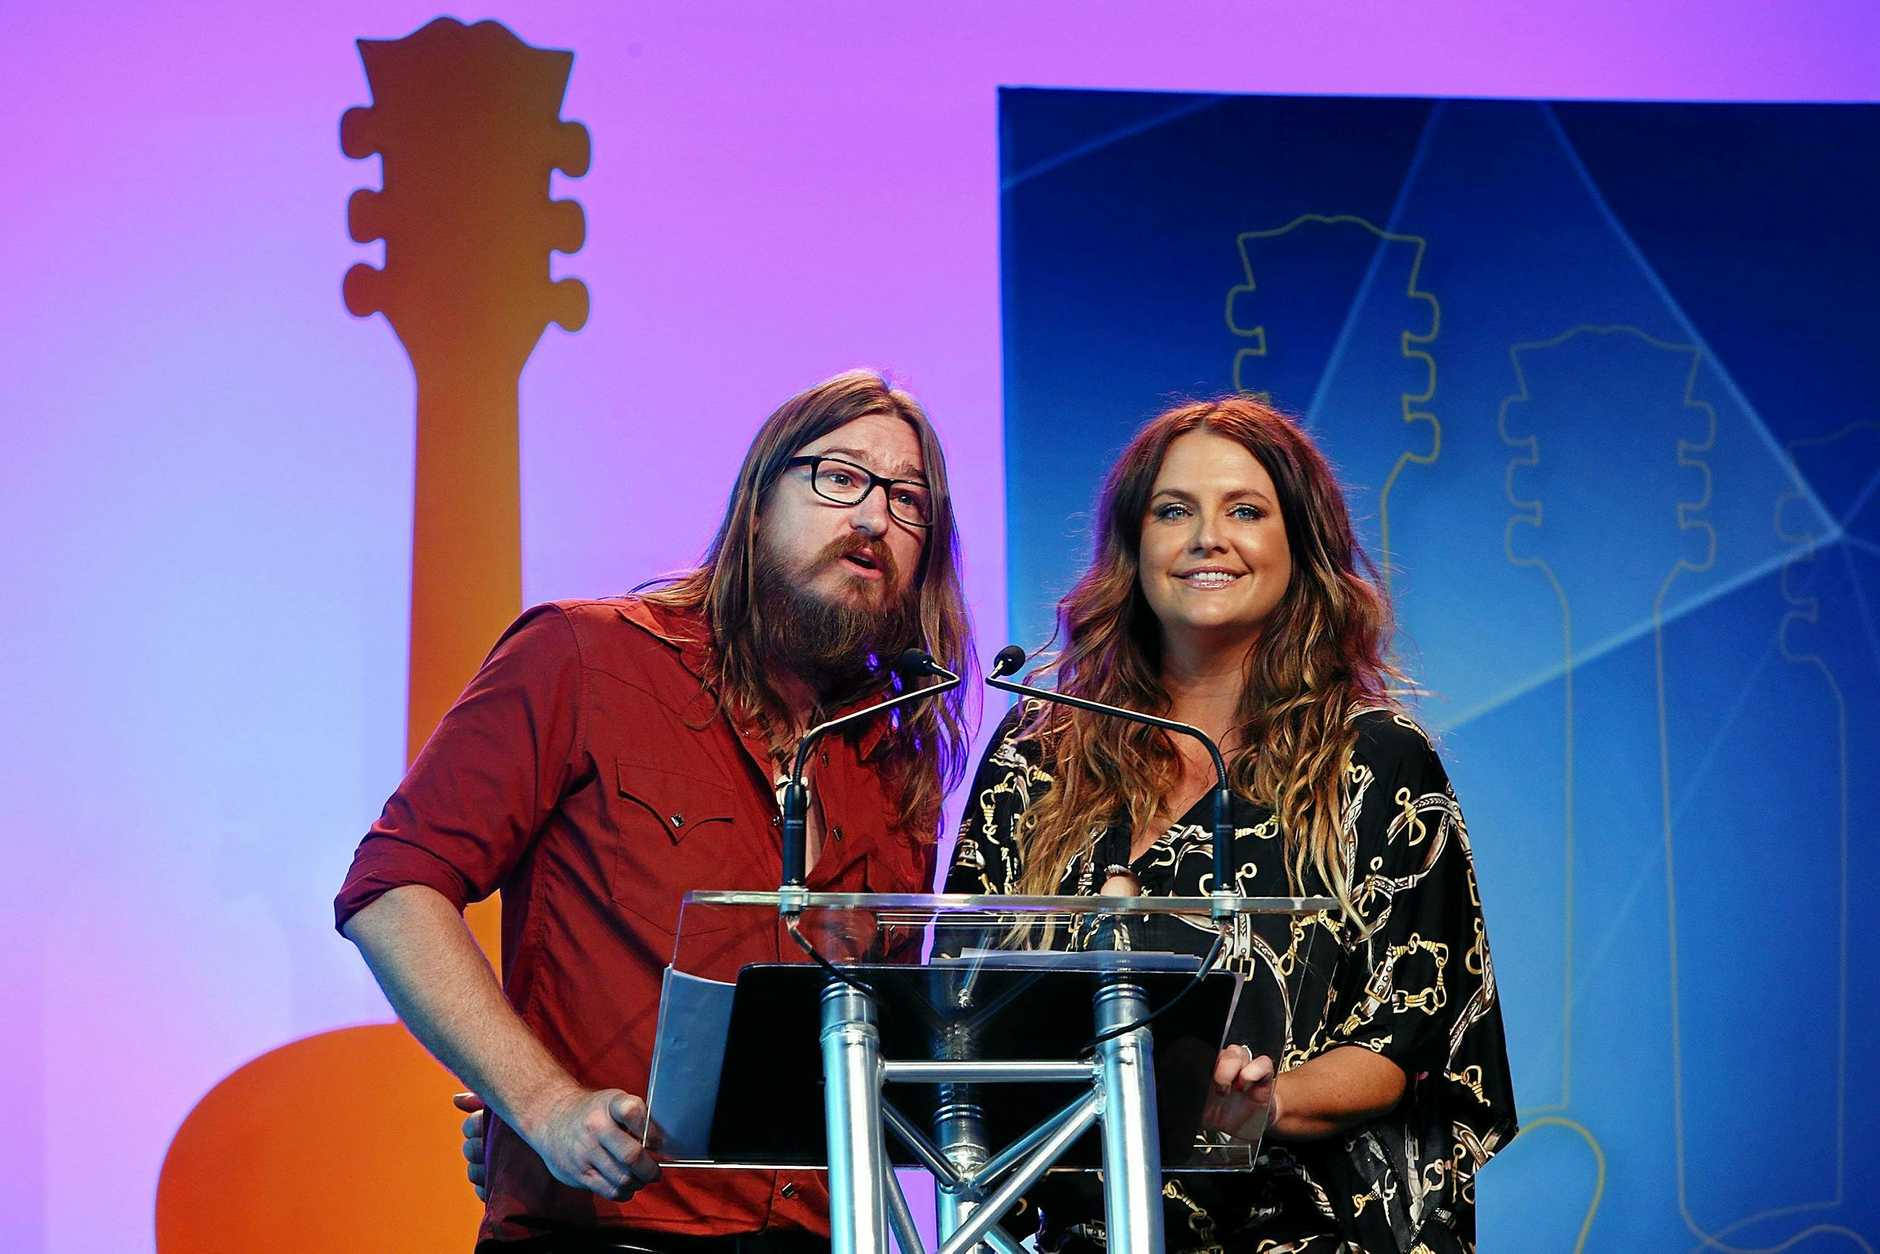 Brooke McClymont and Adam Eckersley presenting at the Golden Guitars last year. The husband and wife team are up for for four awards tonight, the first time as a duo.